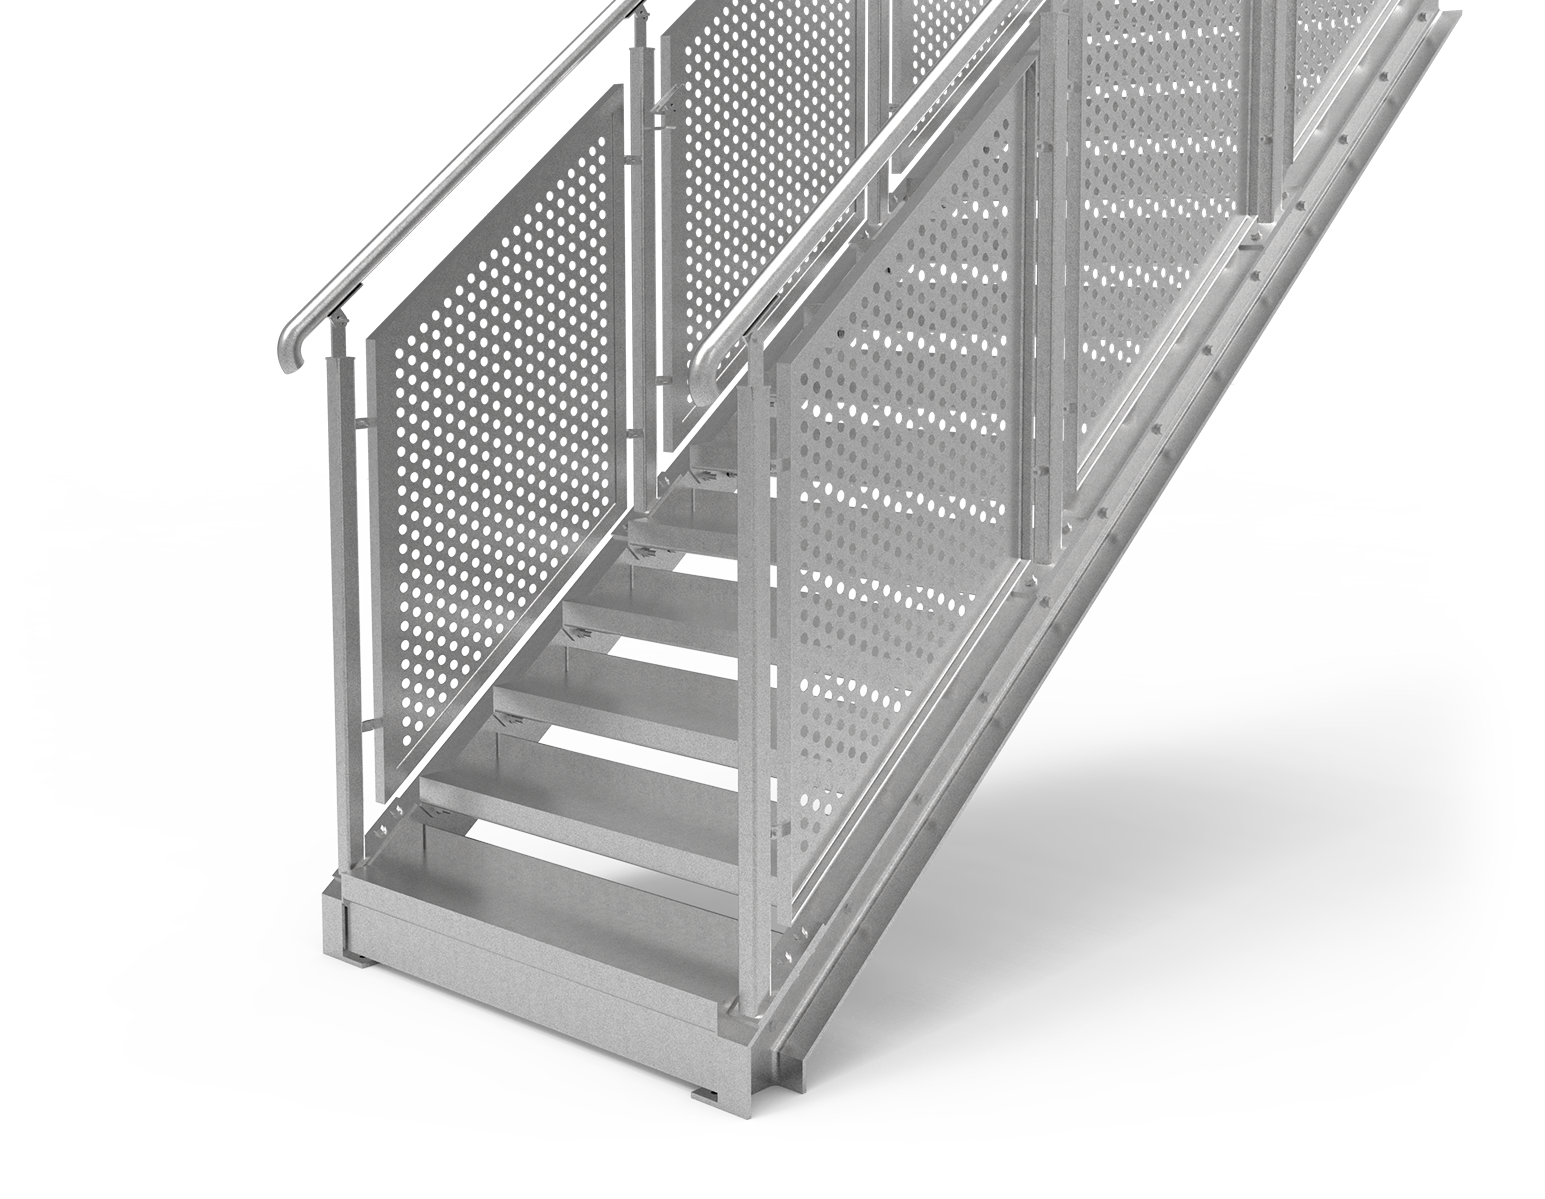 Perforated plate straight staircase railing